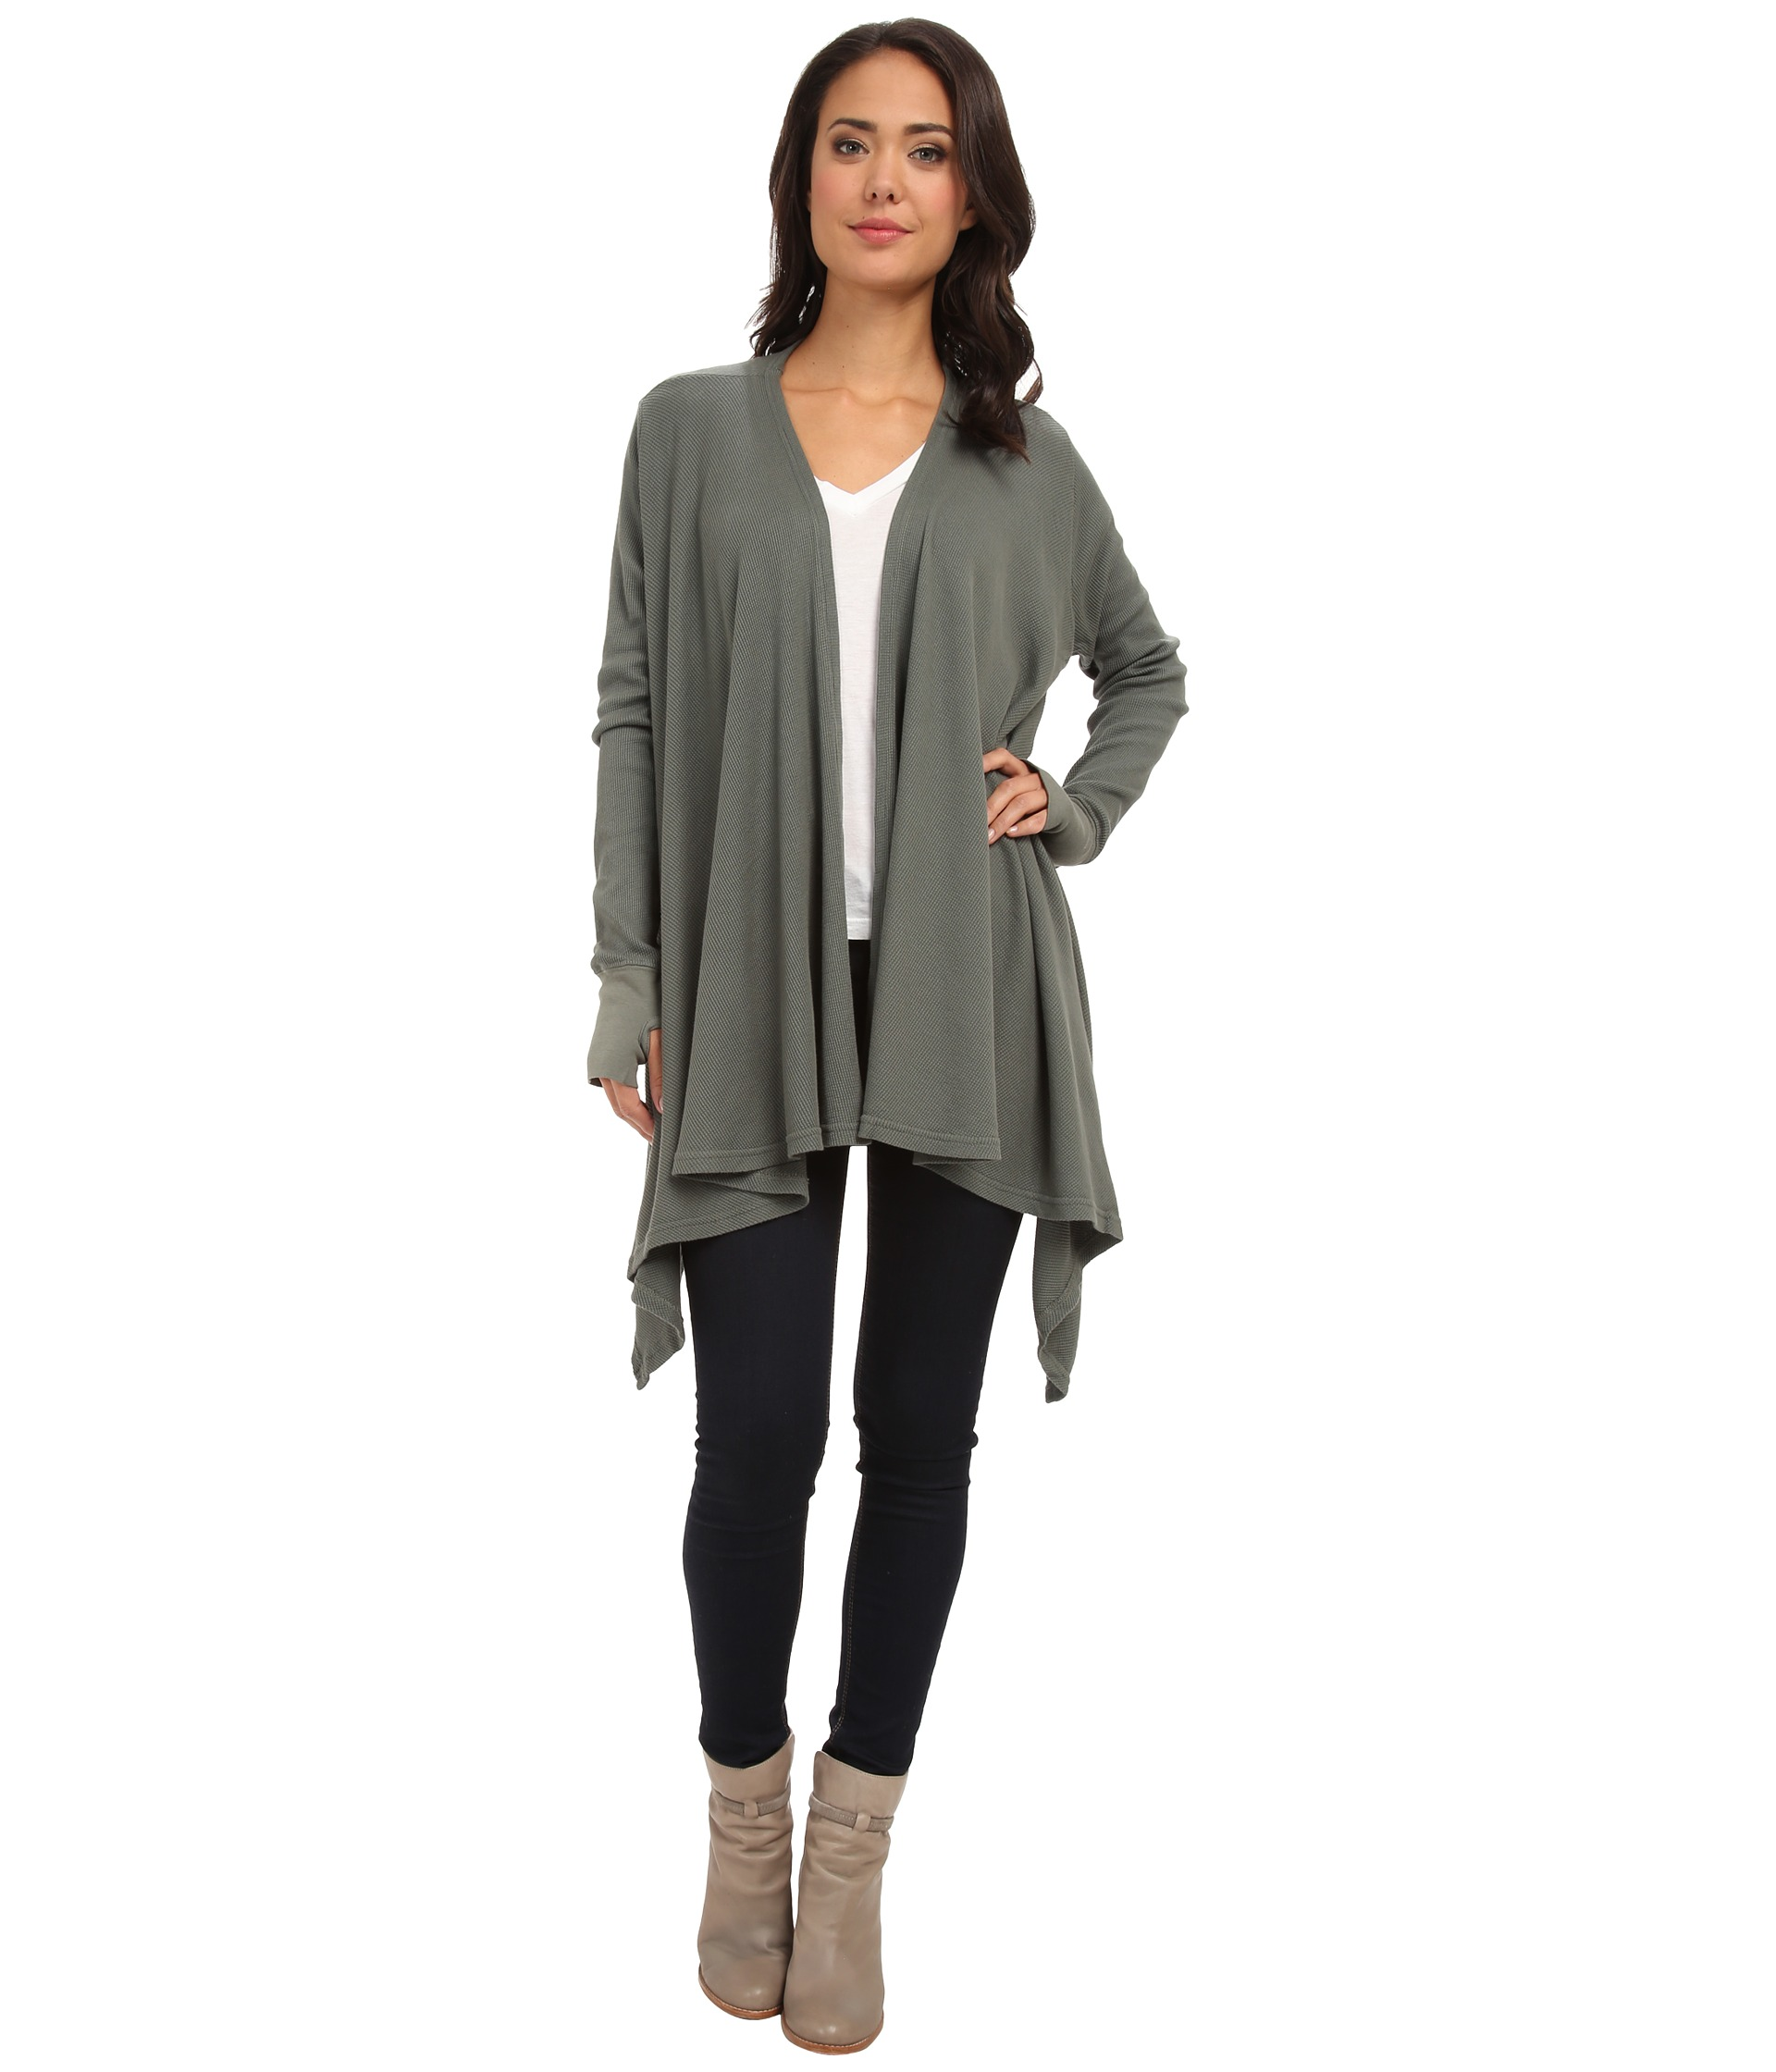 Shop Free People Hangout Long Thumb-Hole Cardigan online at learn-islam.gq Layer on the cool in this ultra-fashionable cardigan from Free People, styled all the way down to the ankles. Side vents, an open front and thumb-hole sleeves finish off the look.